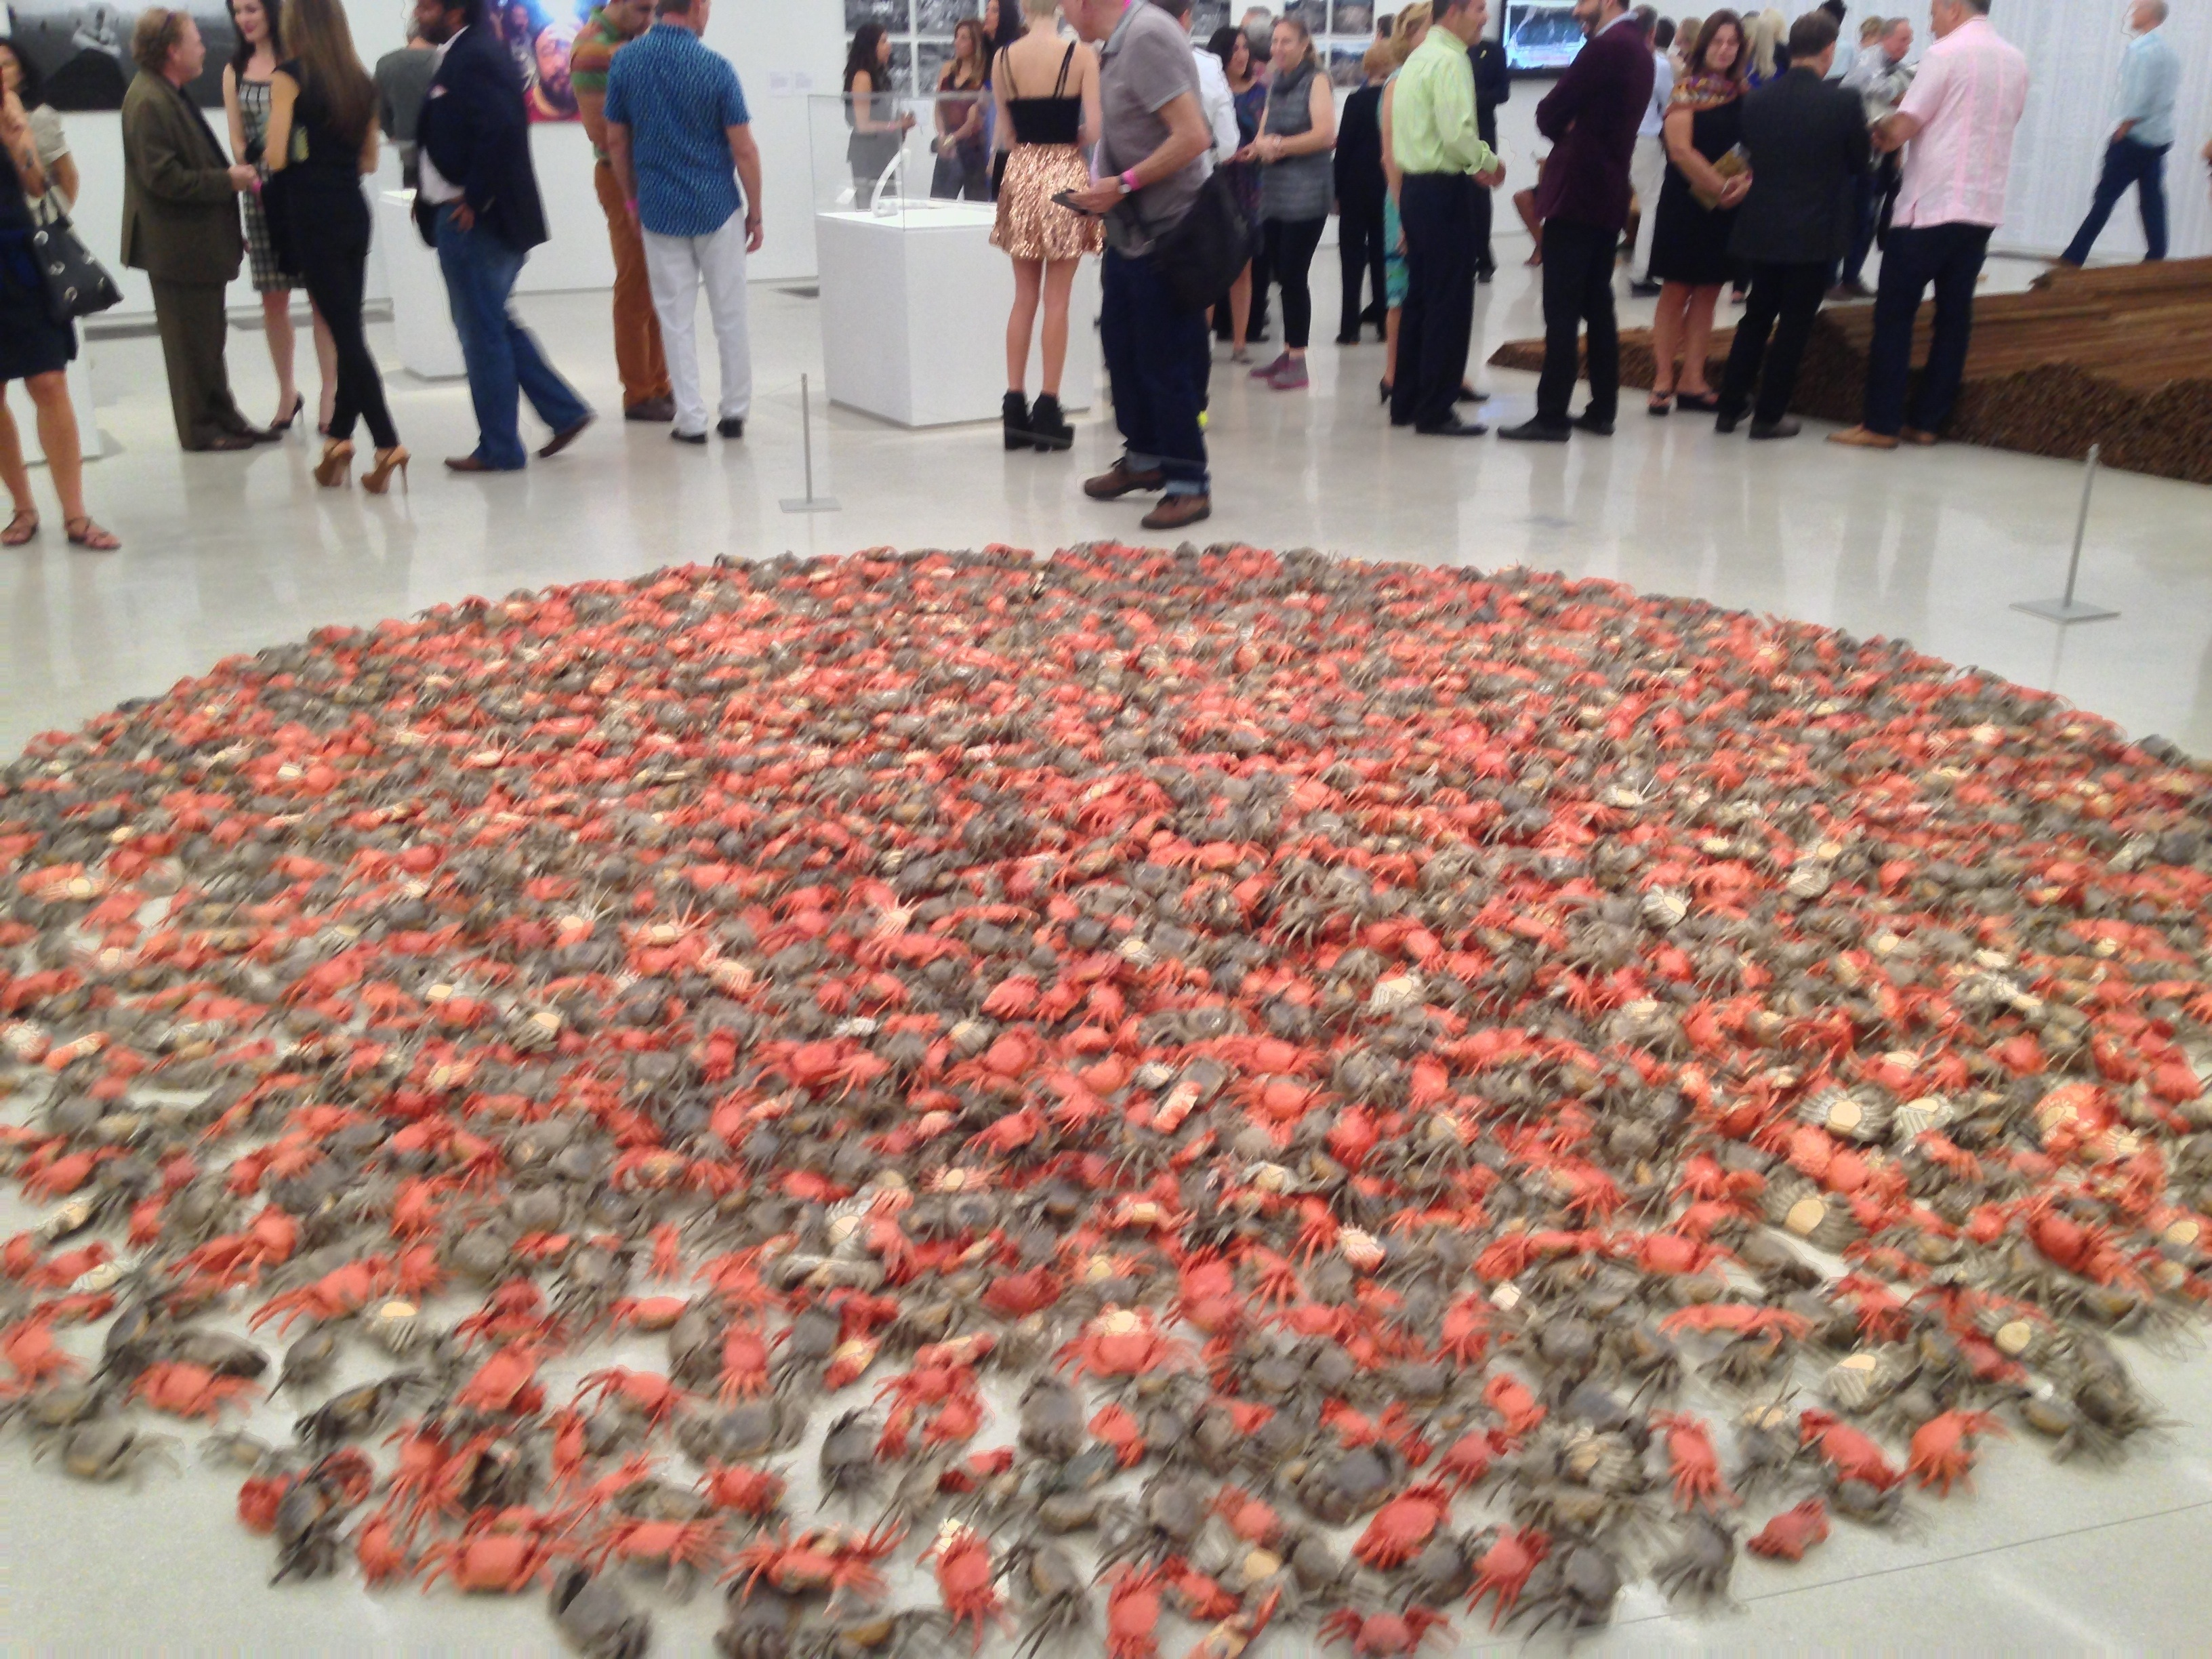 Piles of crabs installation by Chinese Master Ai Weiwei during the Opening reception of the PAMM